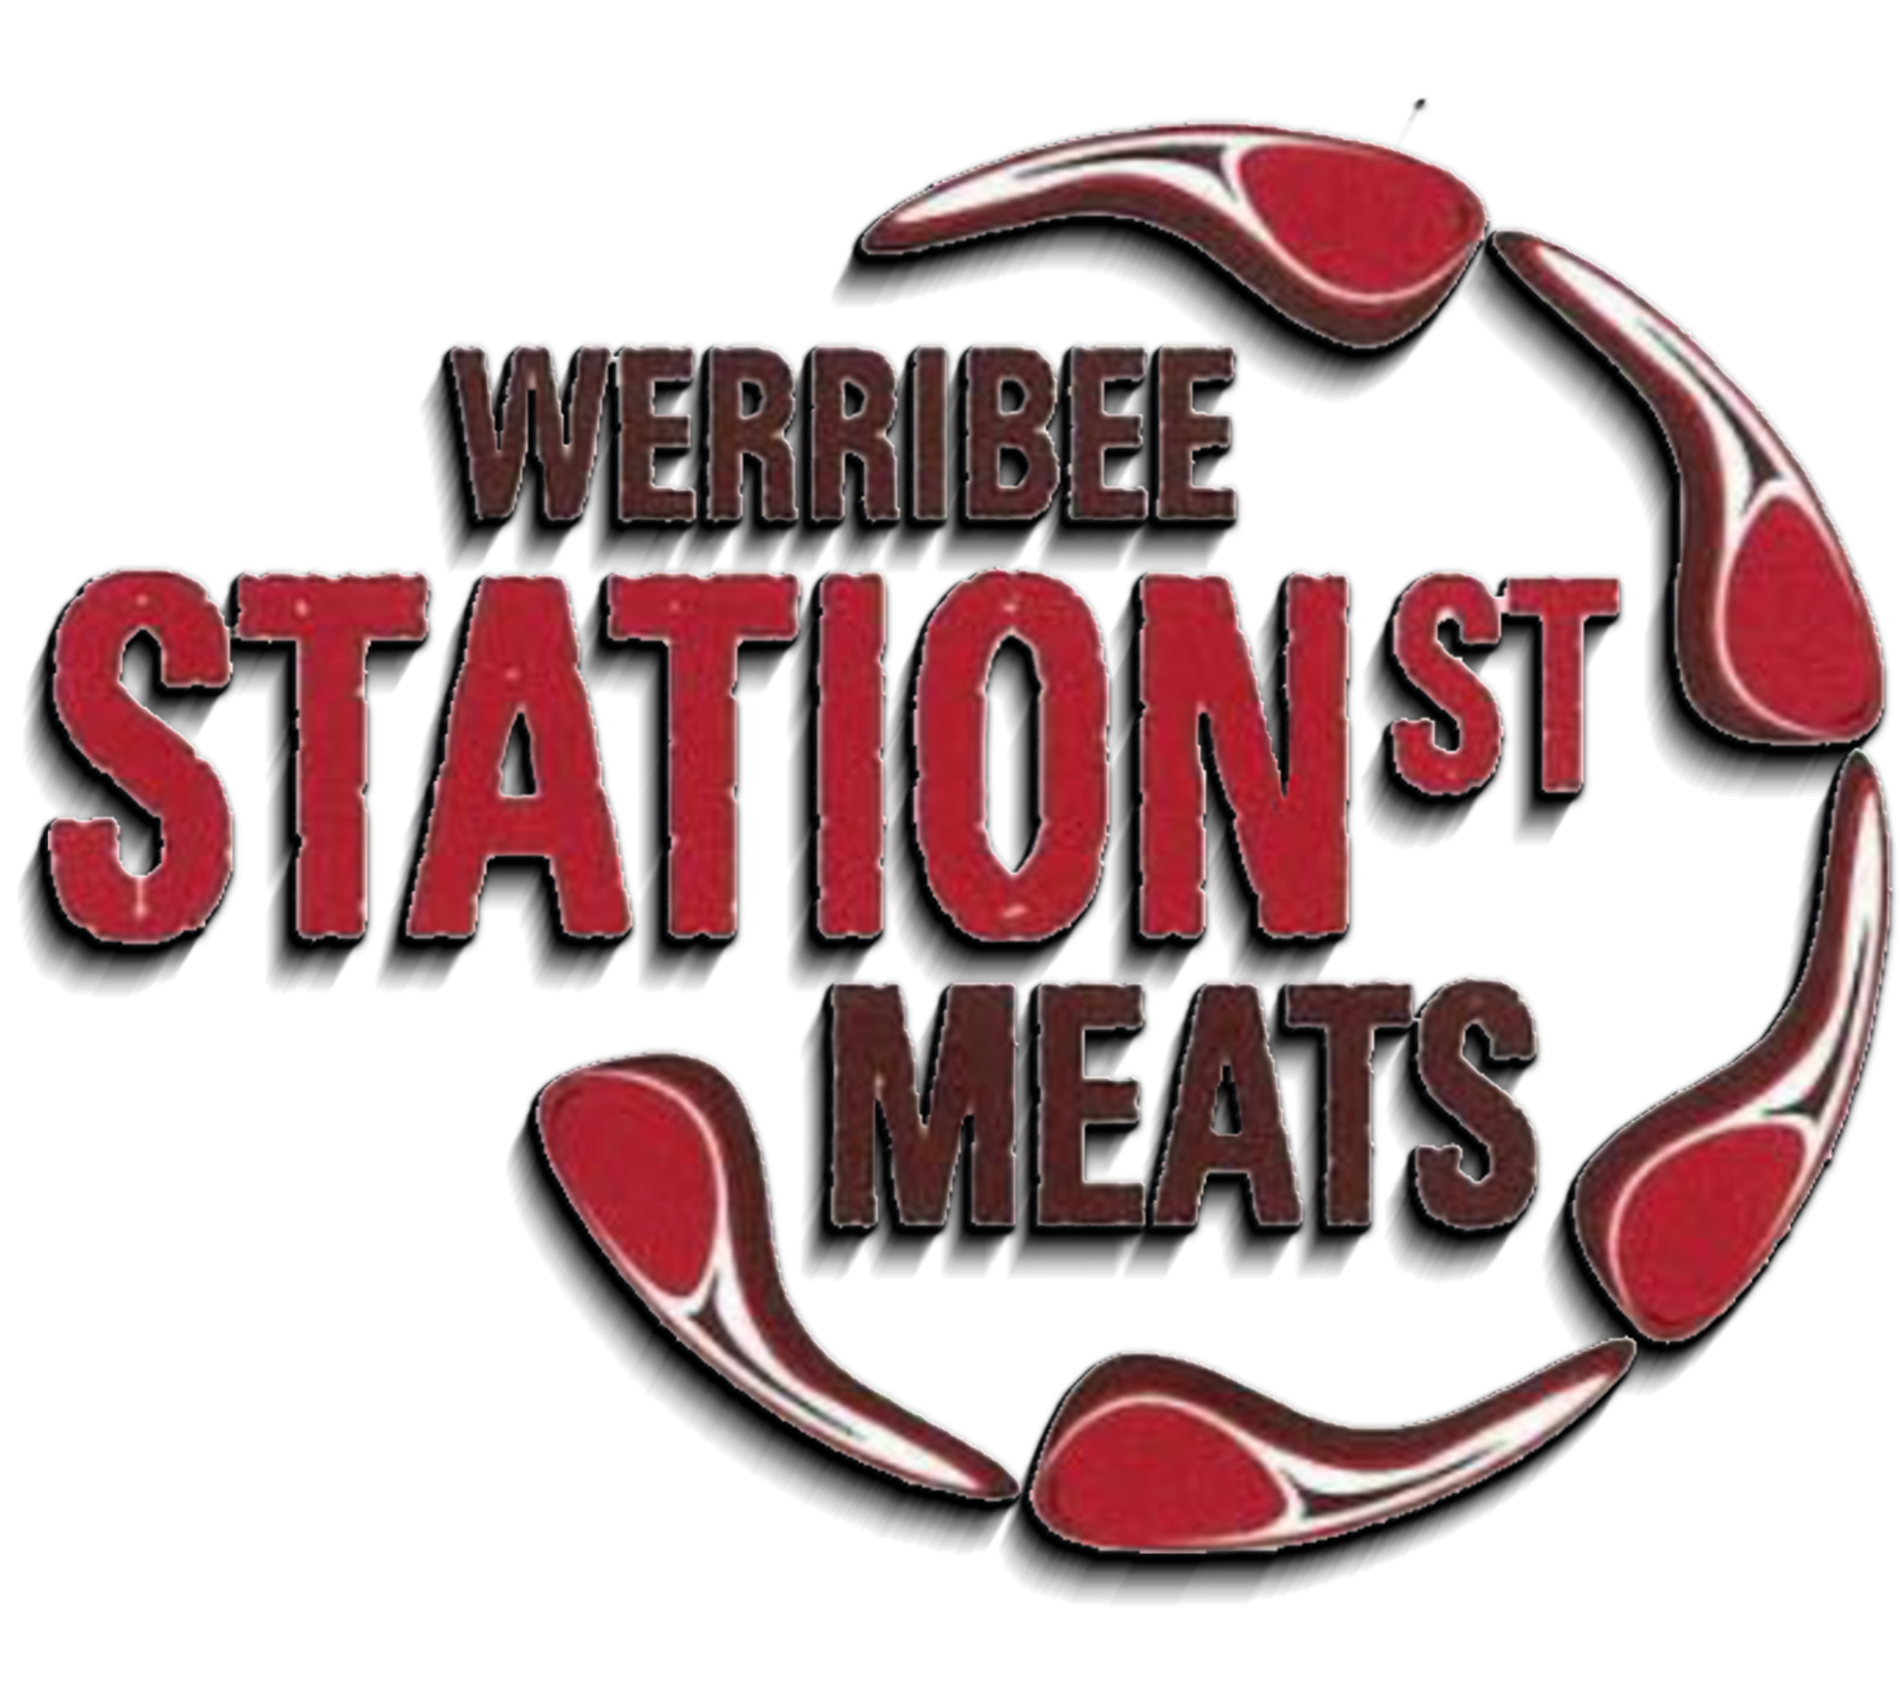 Werribee Station Street Meats